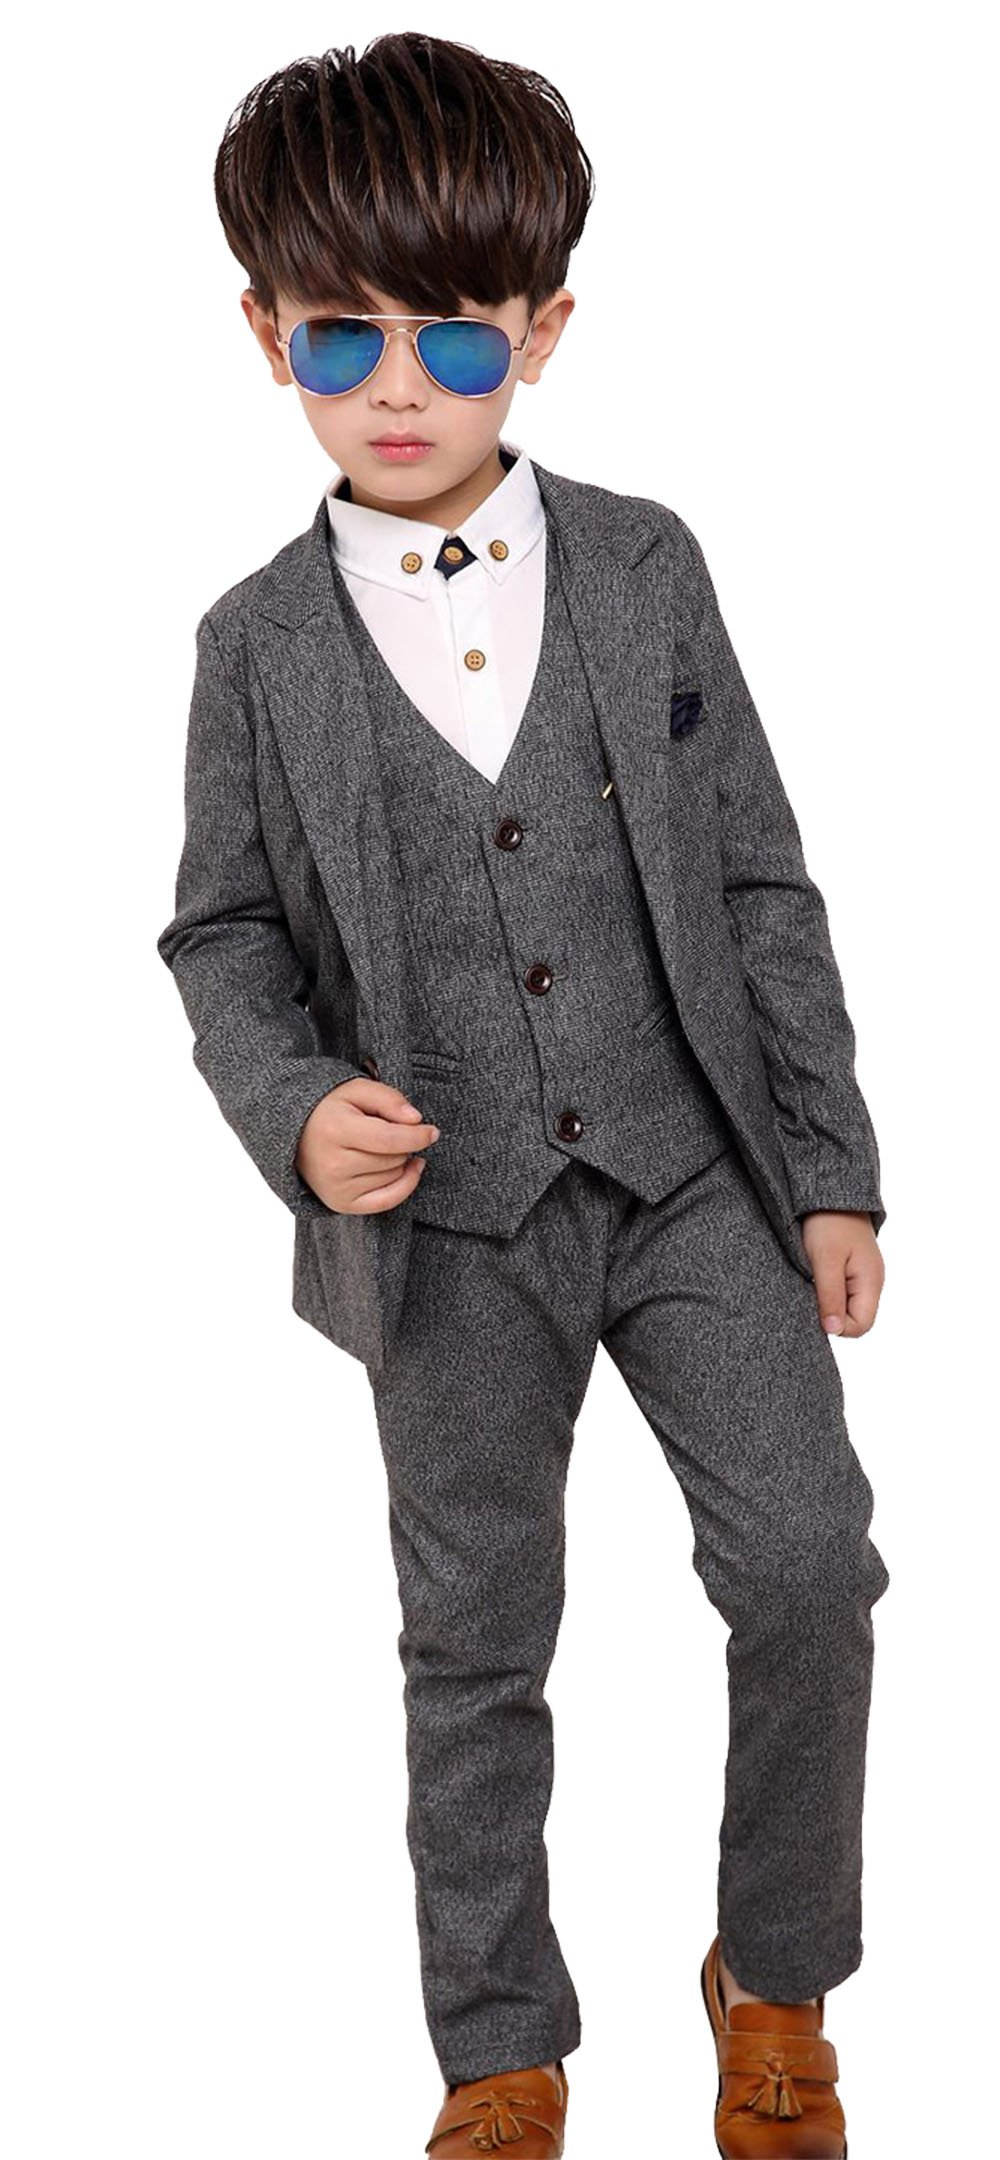 Fengchengjize Boys Tuxedo Set Slim Fit 3 Pieces For Toddler Kids Formal Jacket Pants Vest Boys Suits Set Grey 4